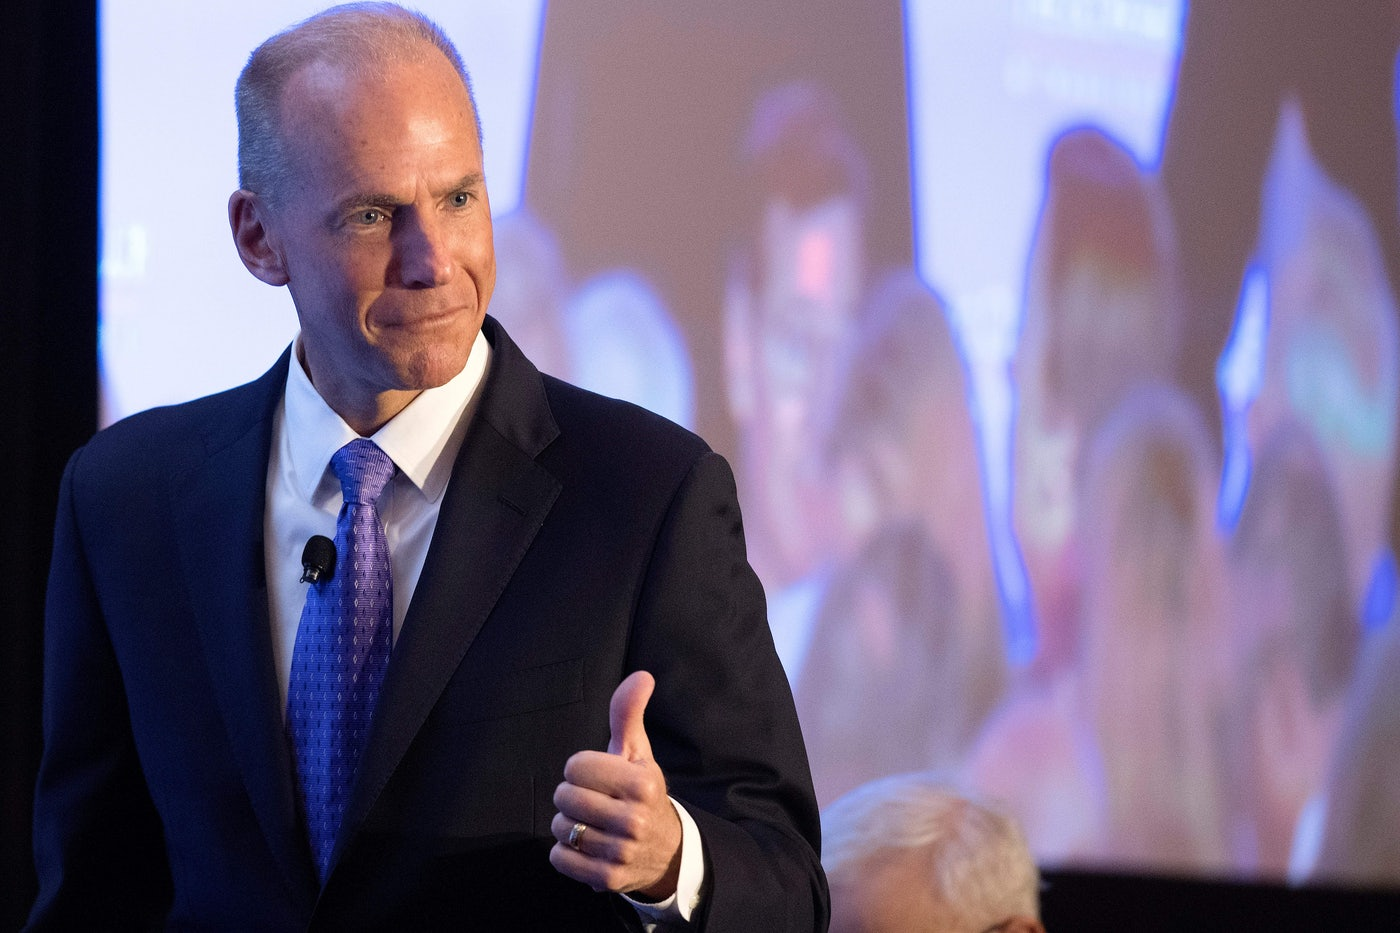 Former Boeing CEO Dennis Muilenburg gives a thumbs up gesture in front of a screen.